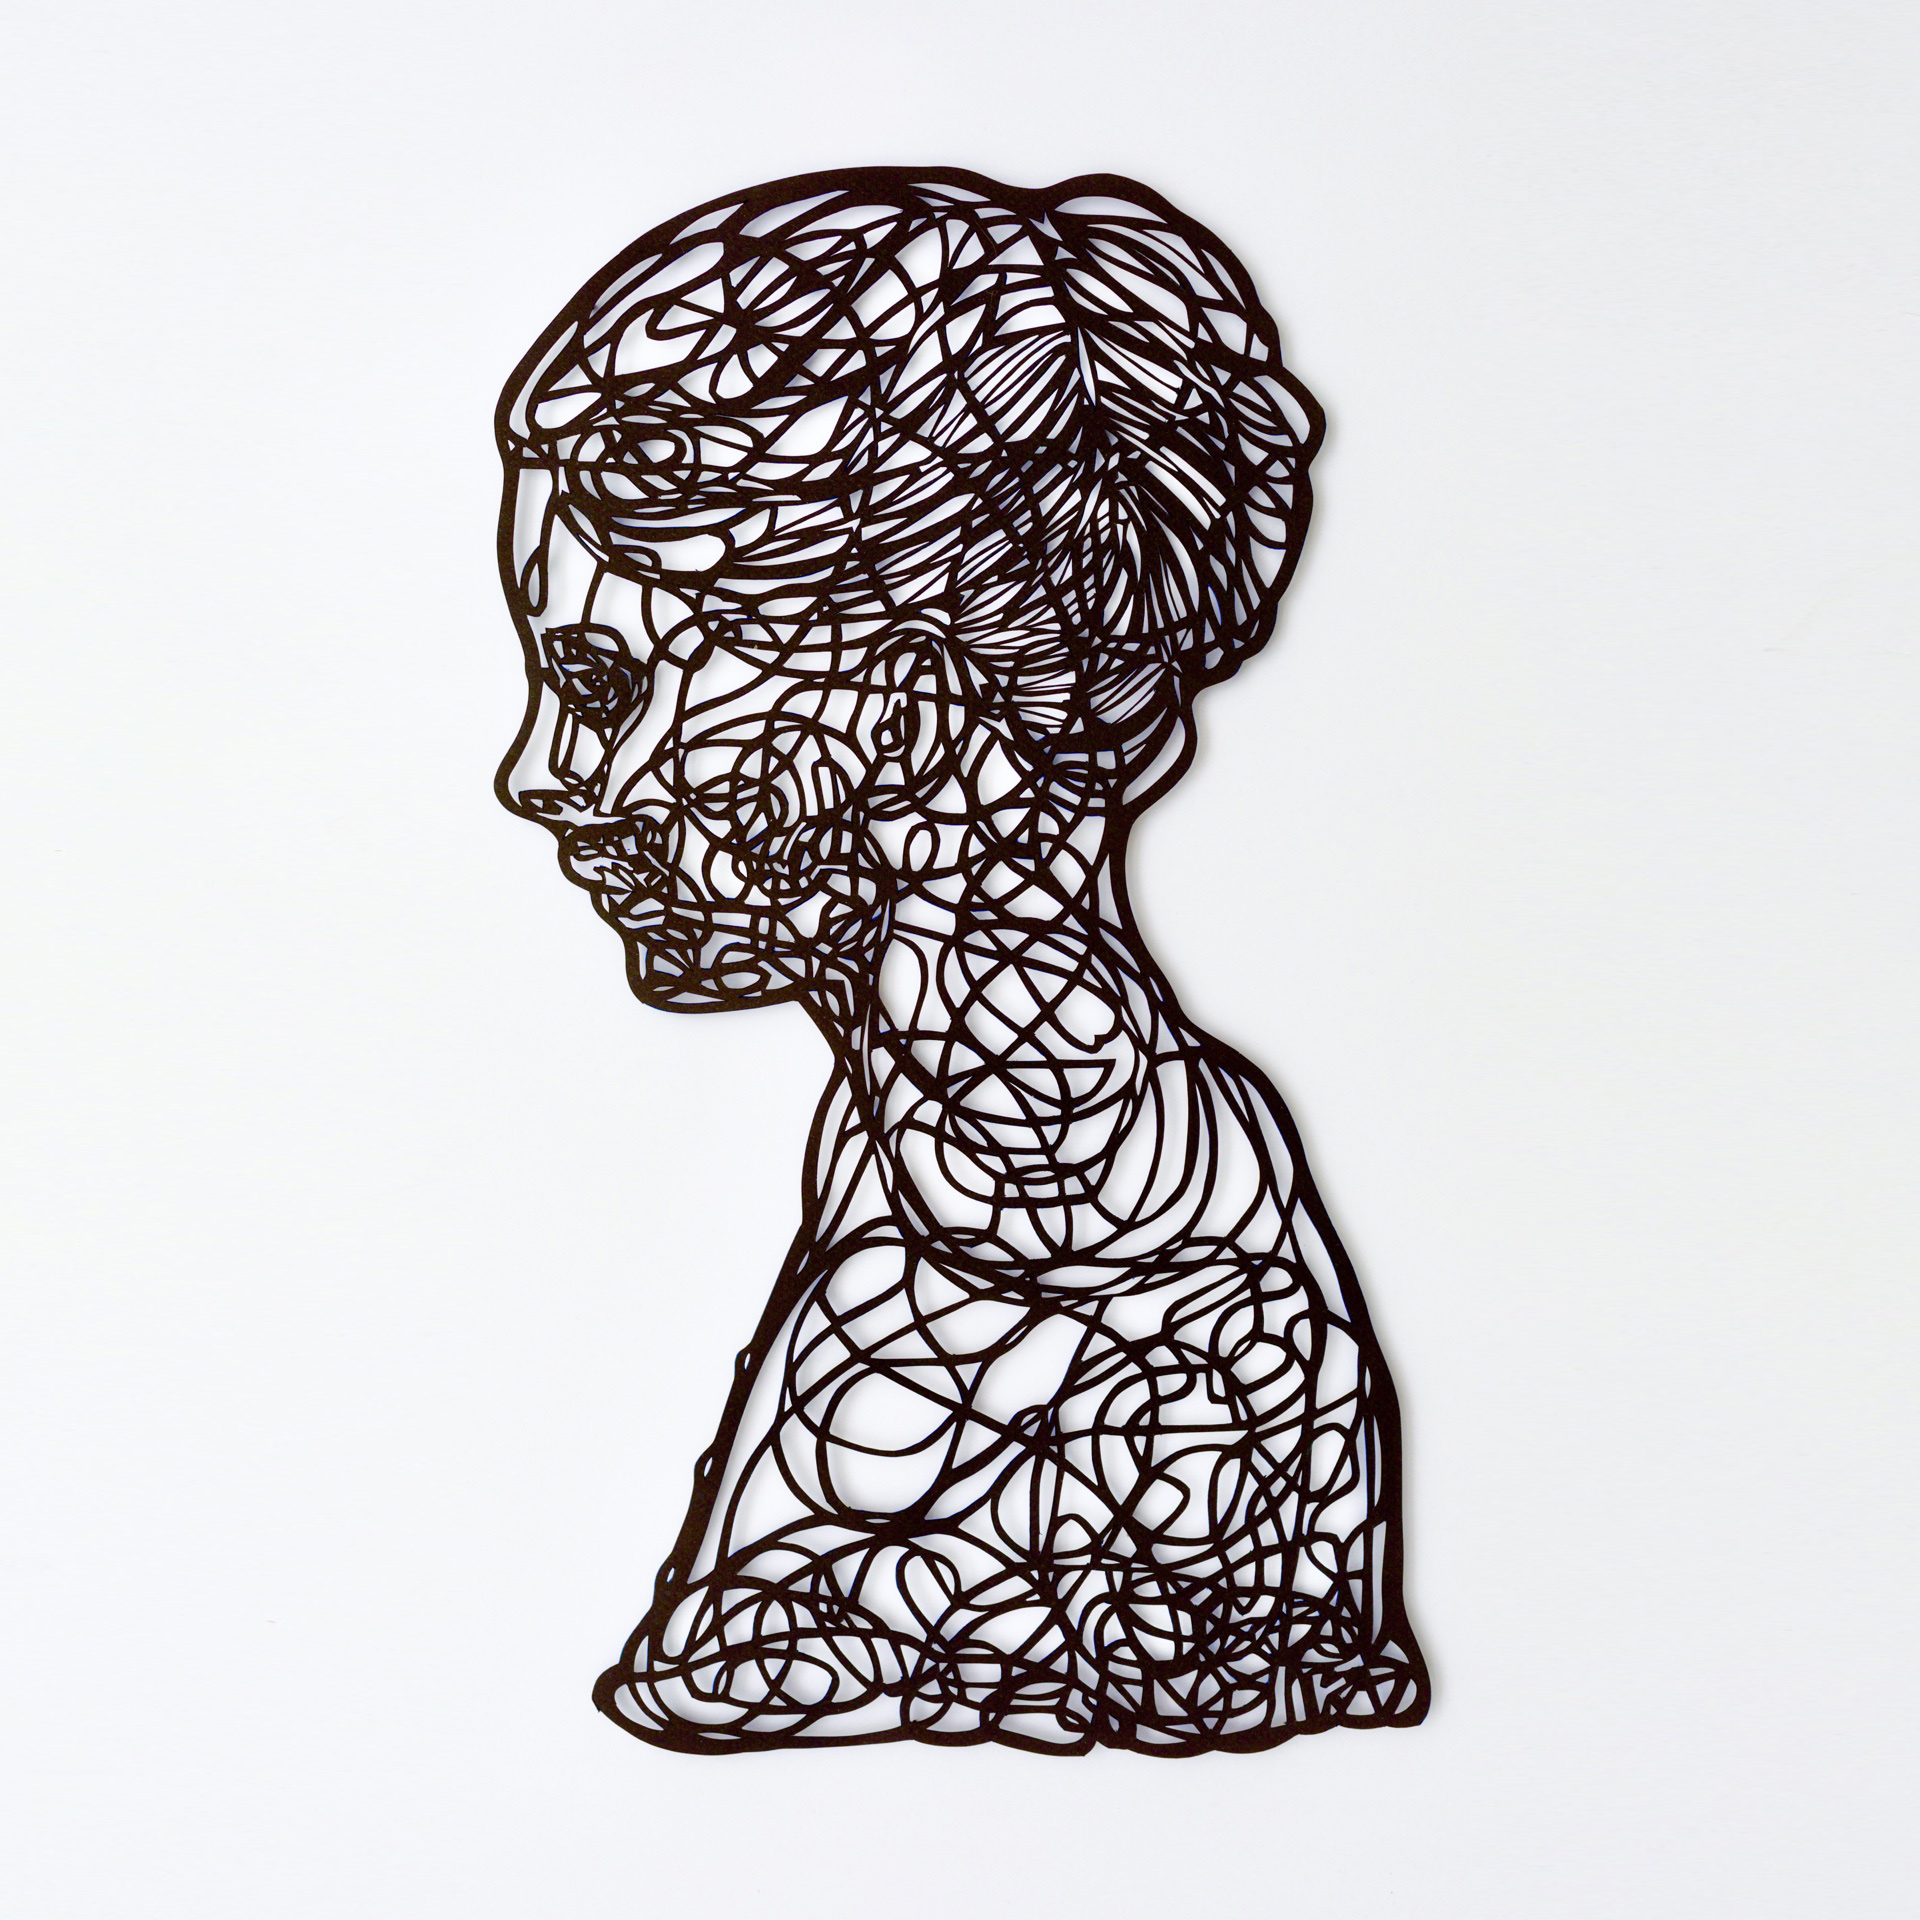 Divided Silhouette - Papercutting